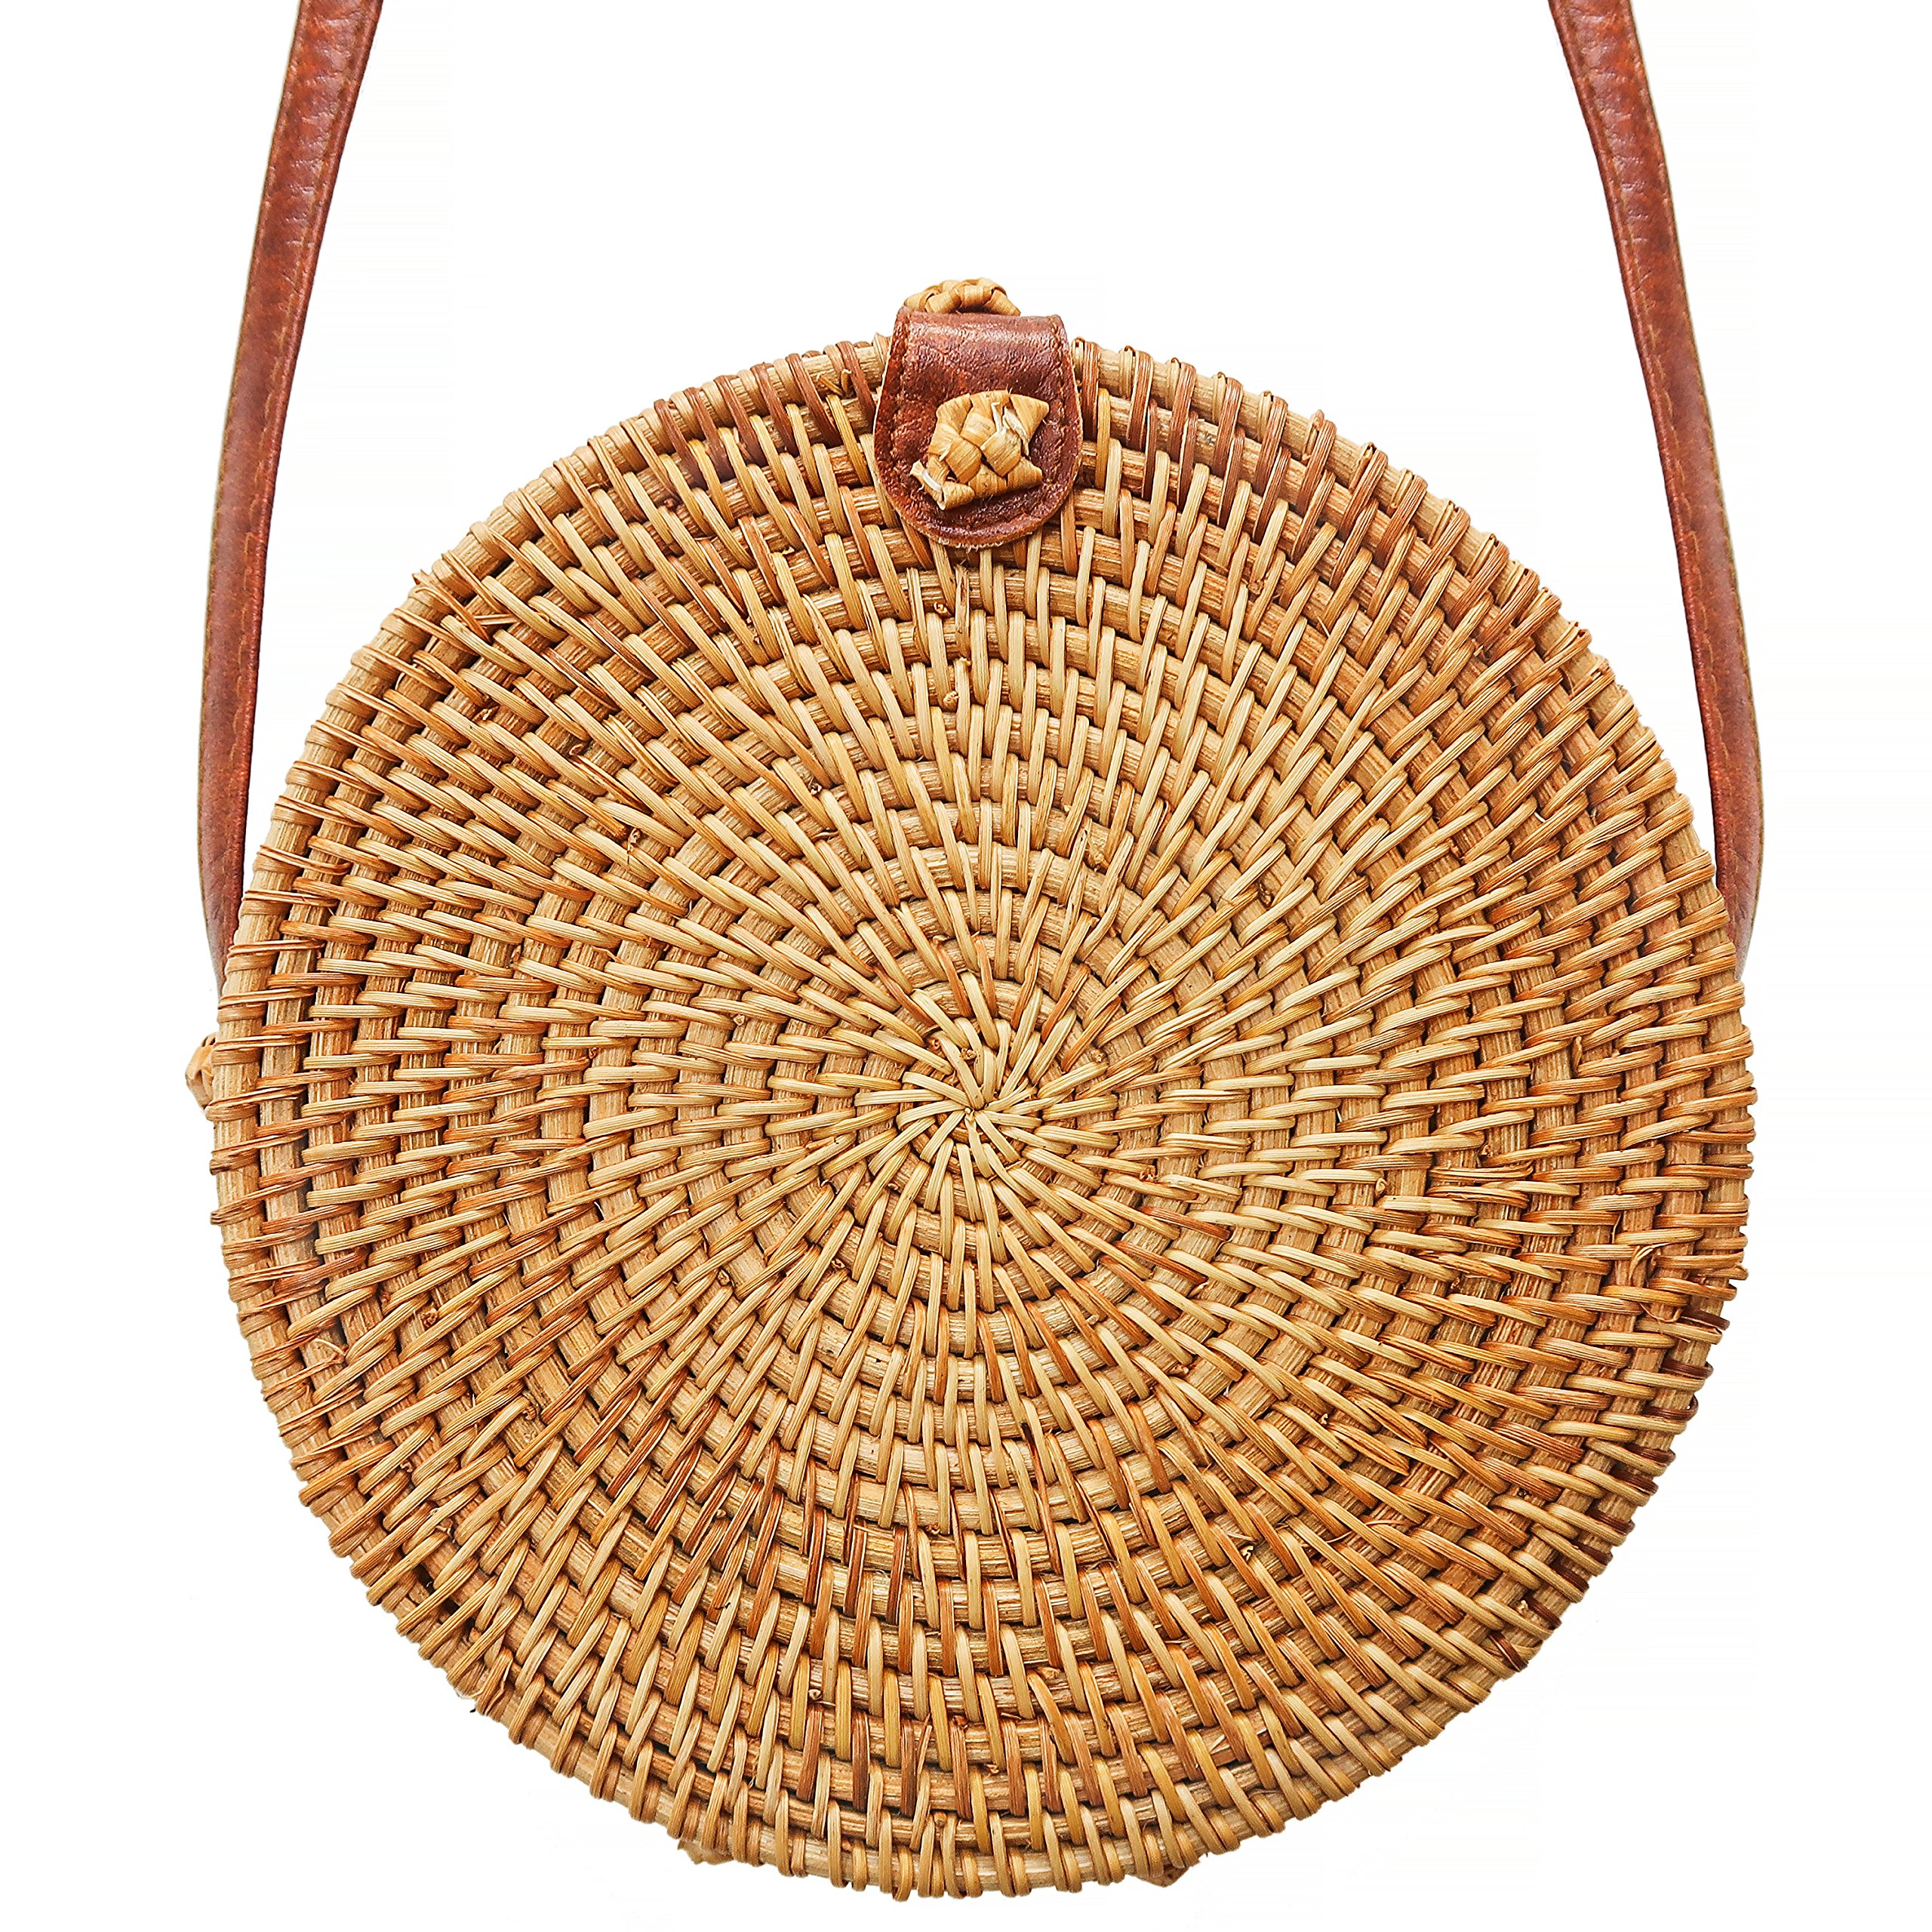 Round Rattan Bali Bag - Crossbody Purse with Snap Clasp by Taste of Tropical